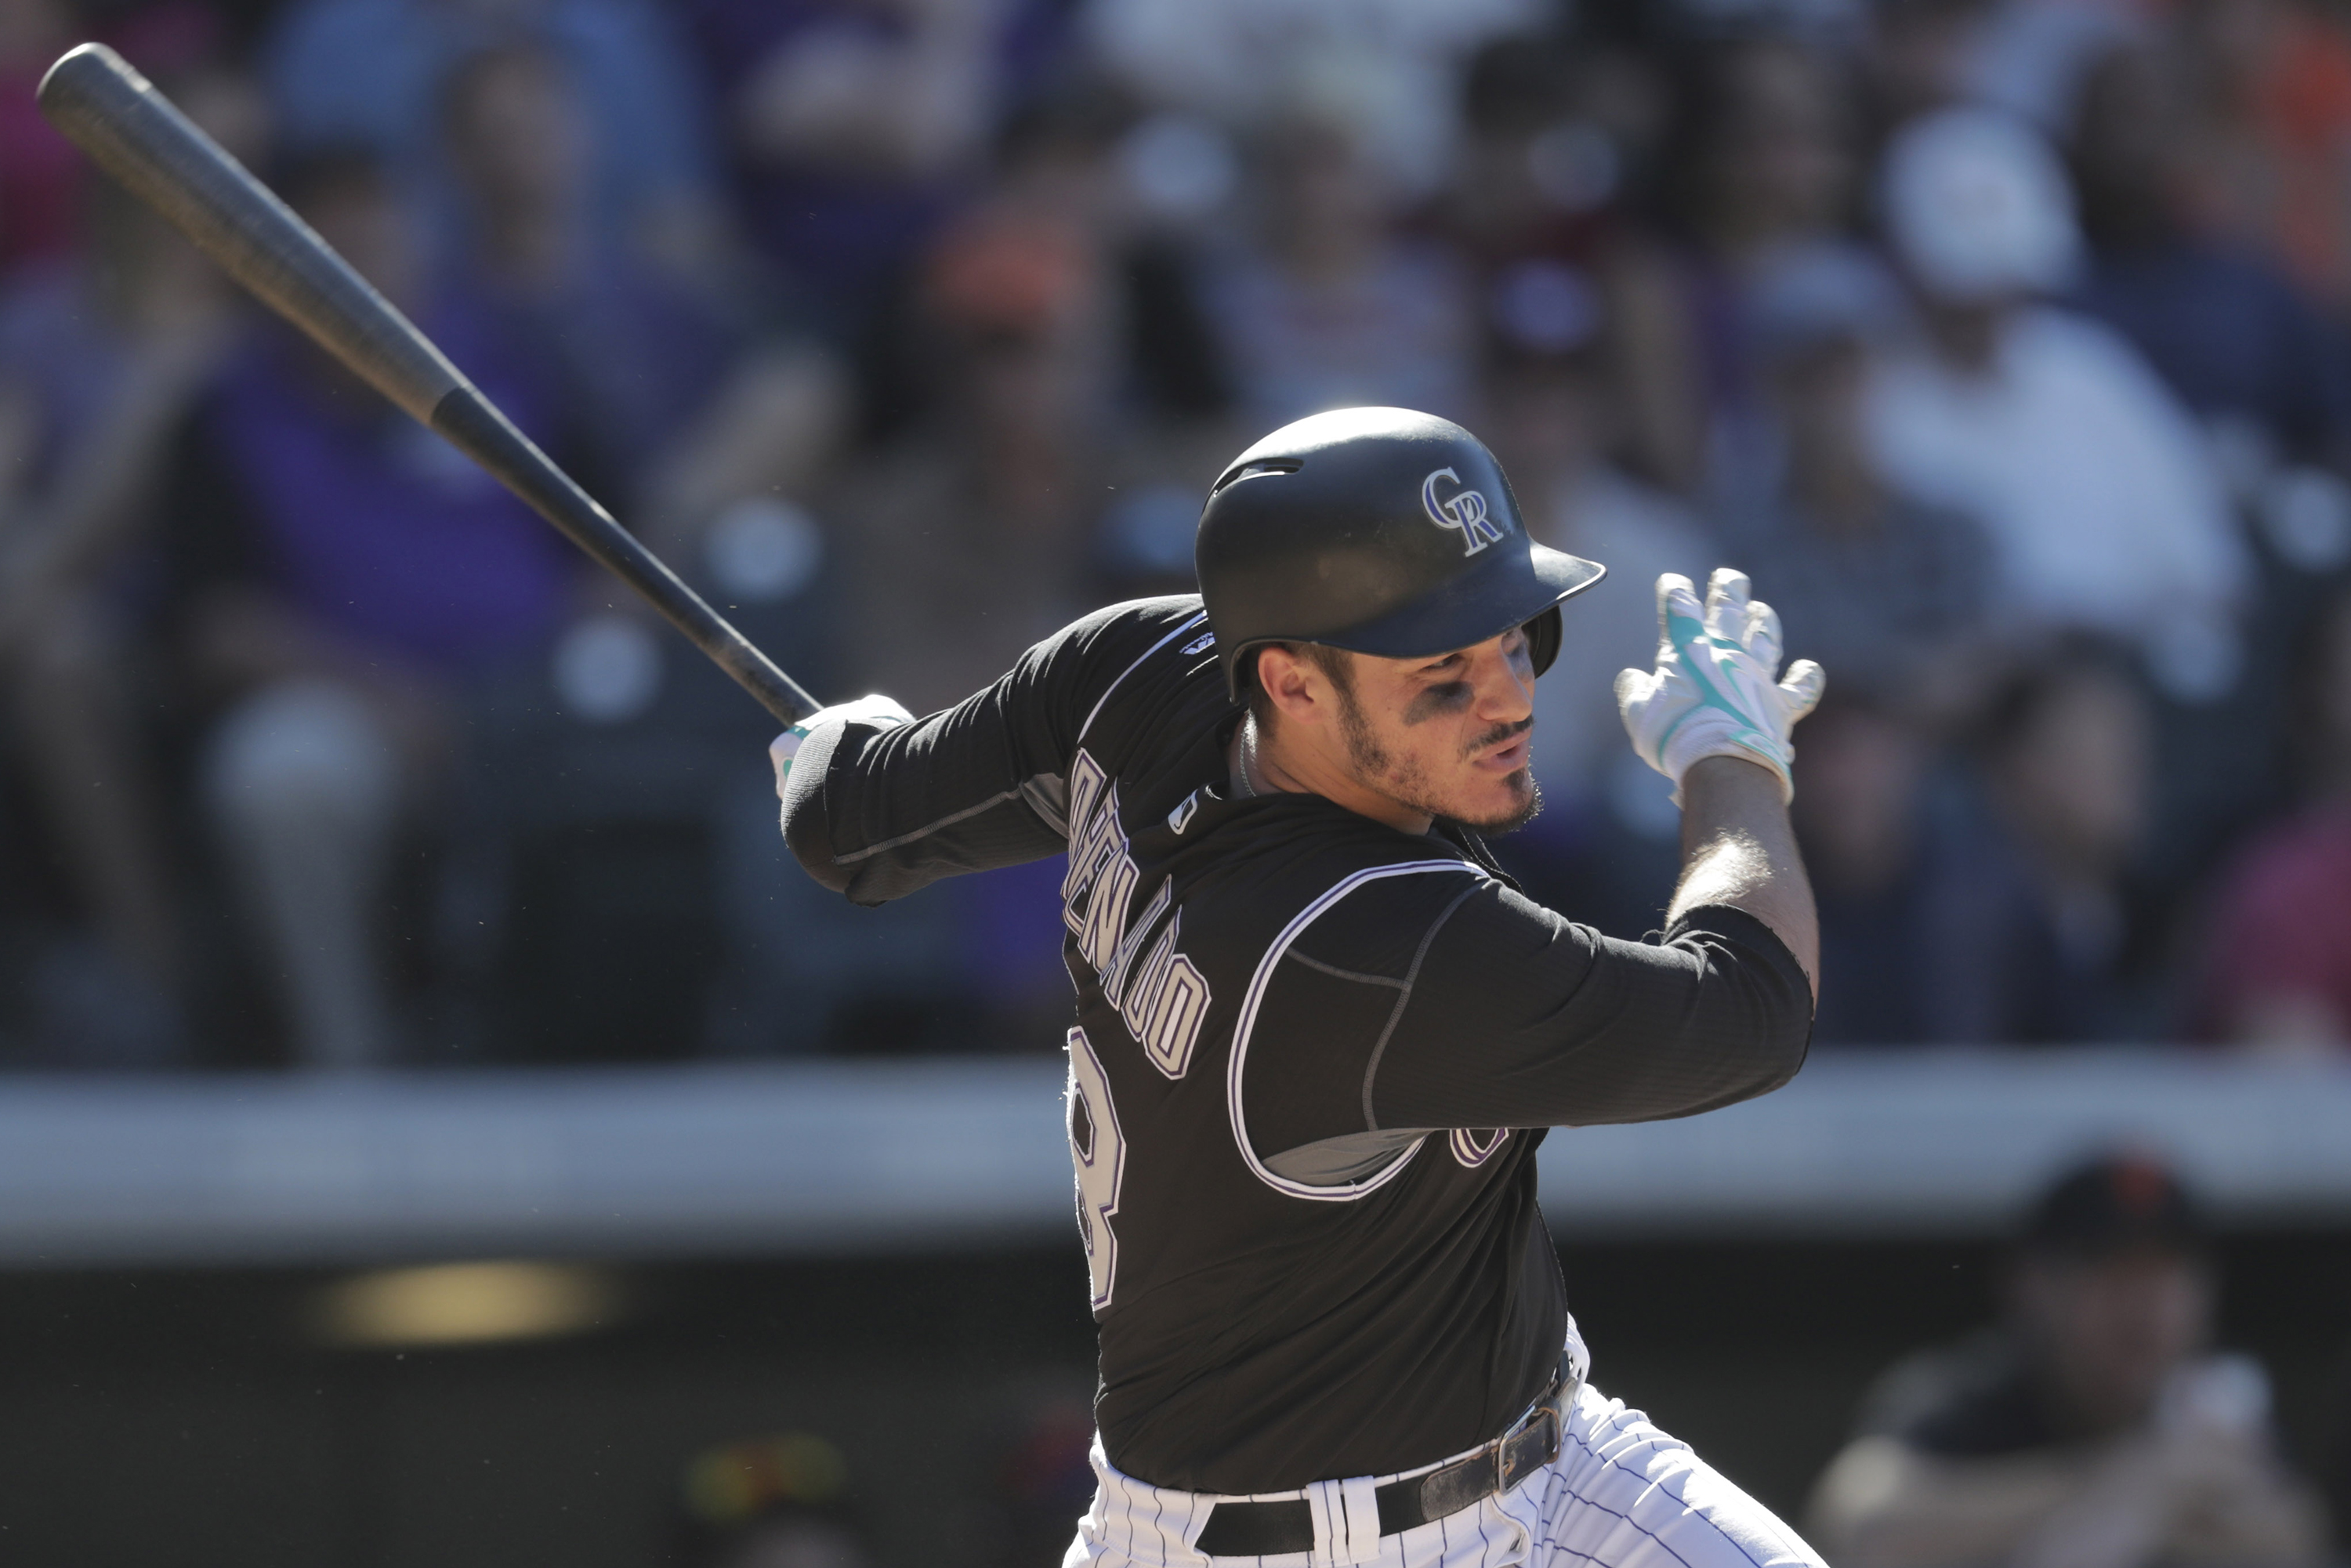 Photo: Rockies Nolan Arenado